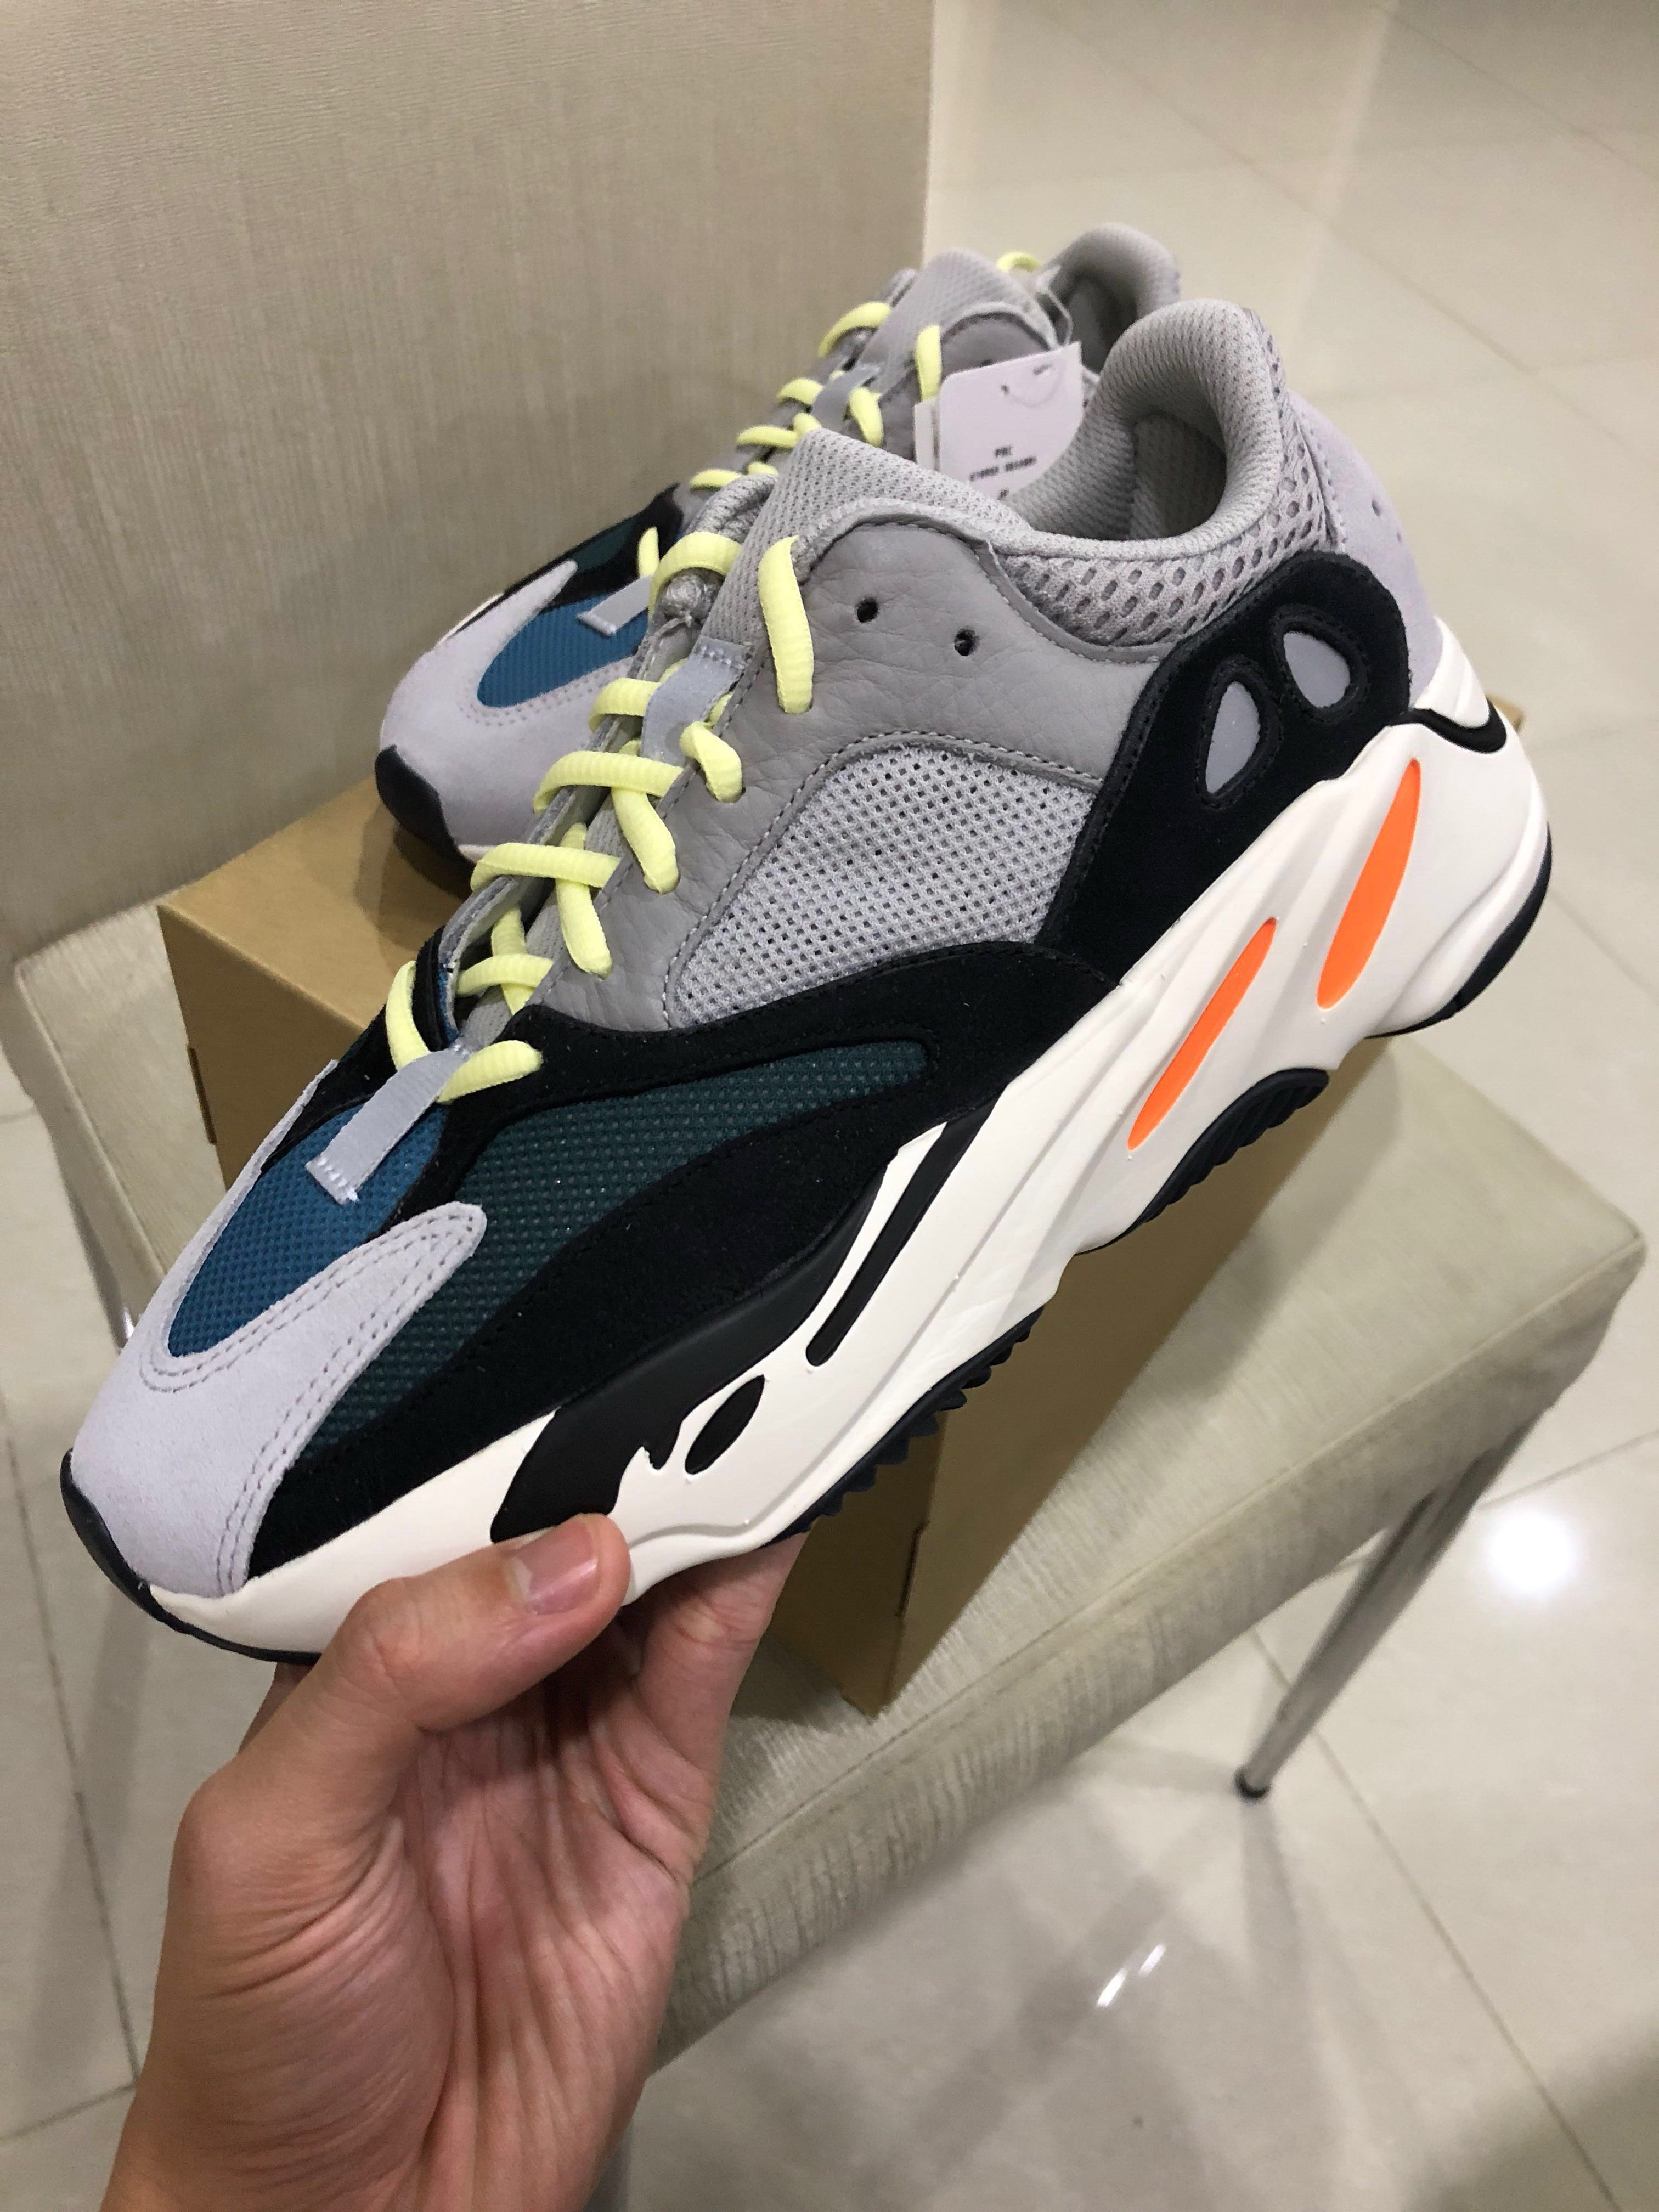 1a2b54b9873b Authentic Adidas Yeezy Boost Wave Runner 700